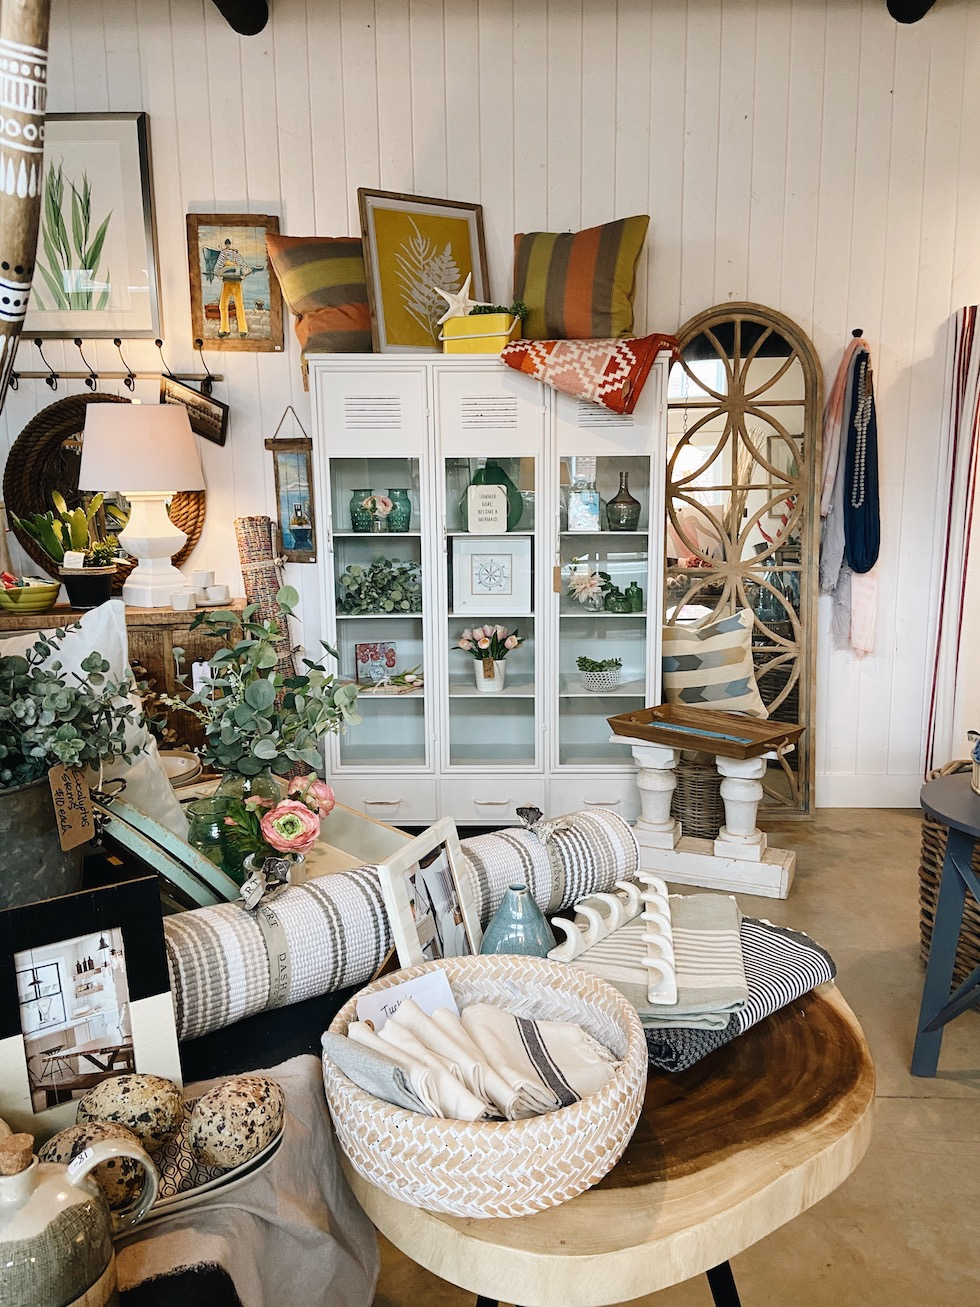 Out to See: Seaworthy Home Shop in Seabrook